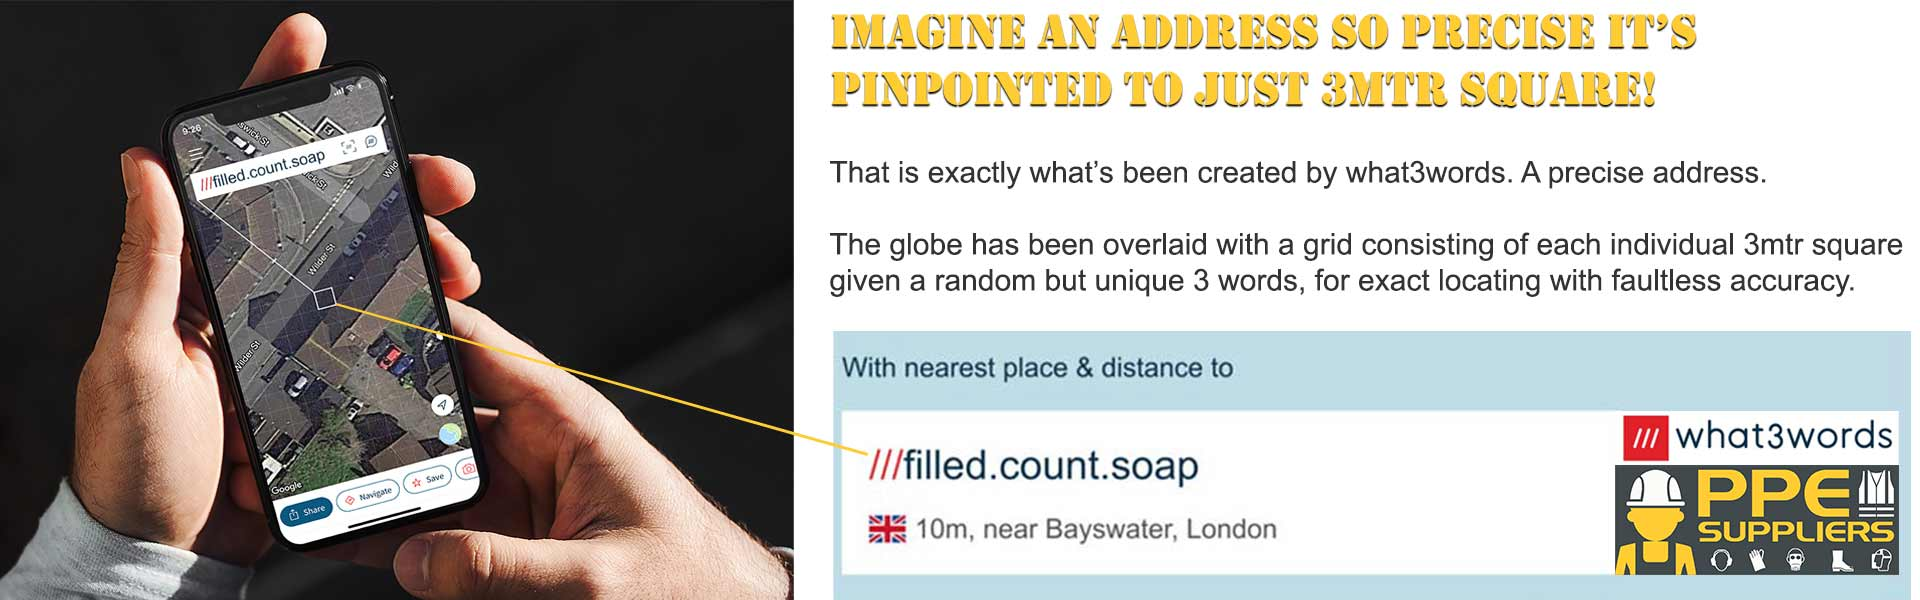 What3Words-With-Ppe-Suppliers-Ltd